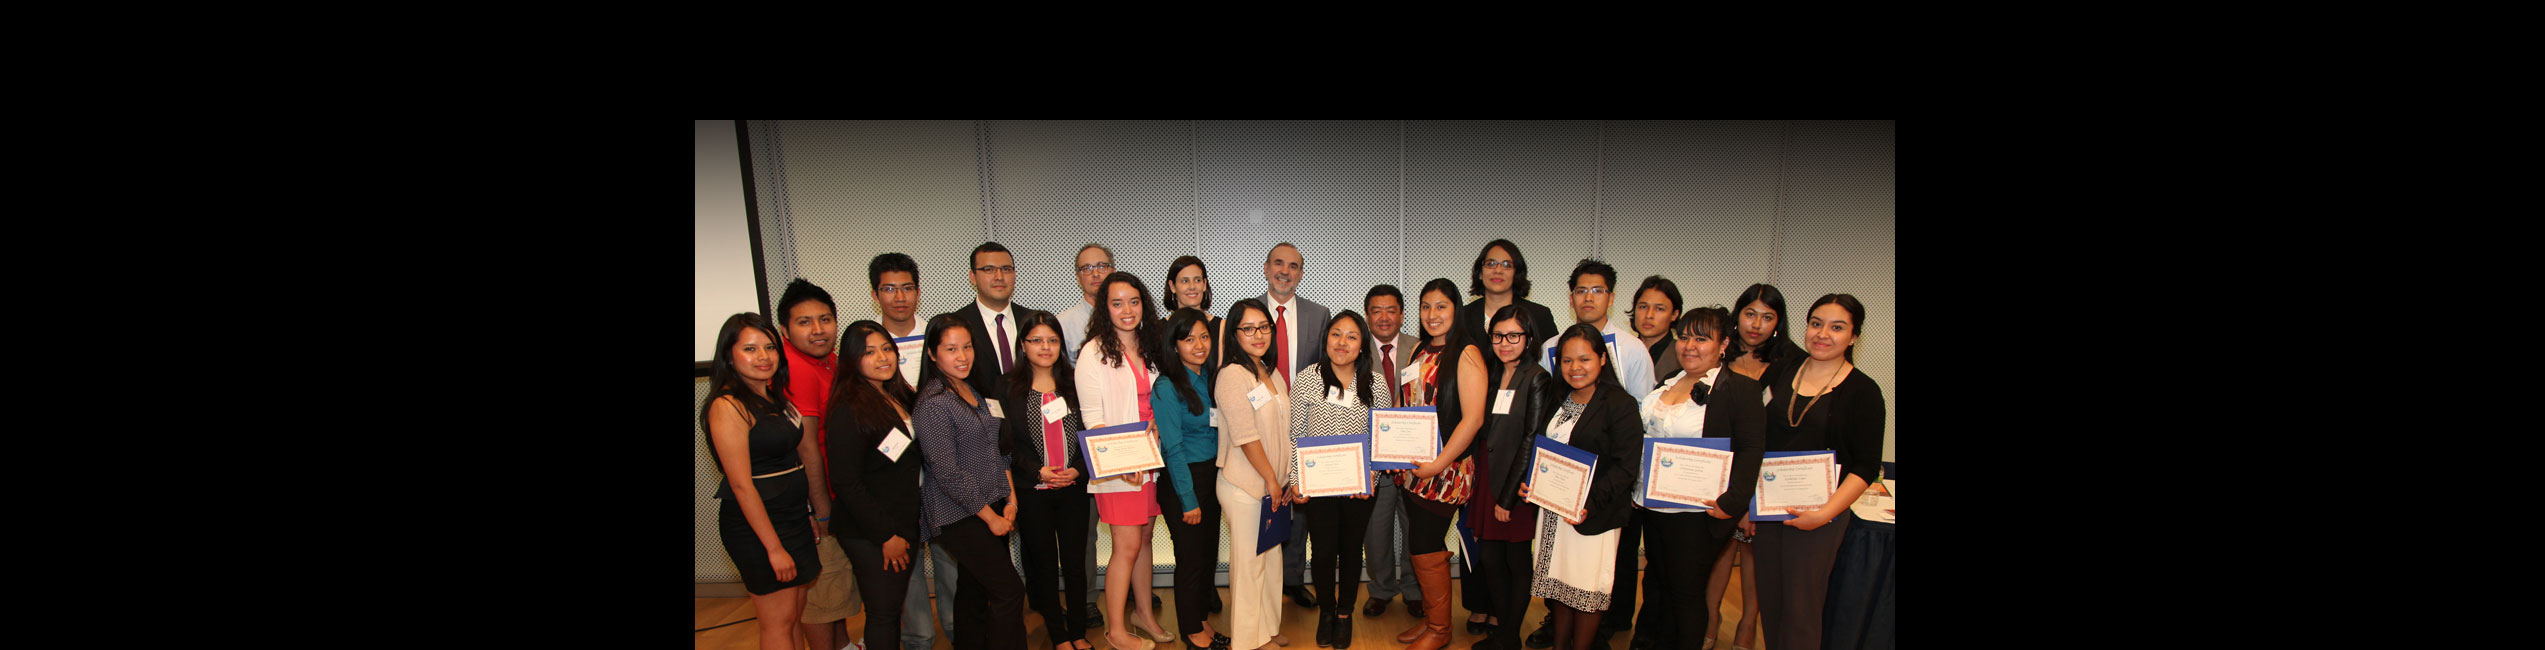 2013 CUNY-IME Becas Scholarship winners